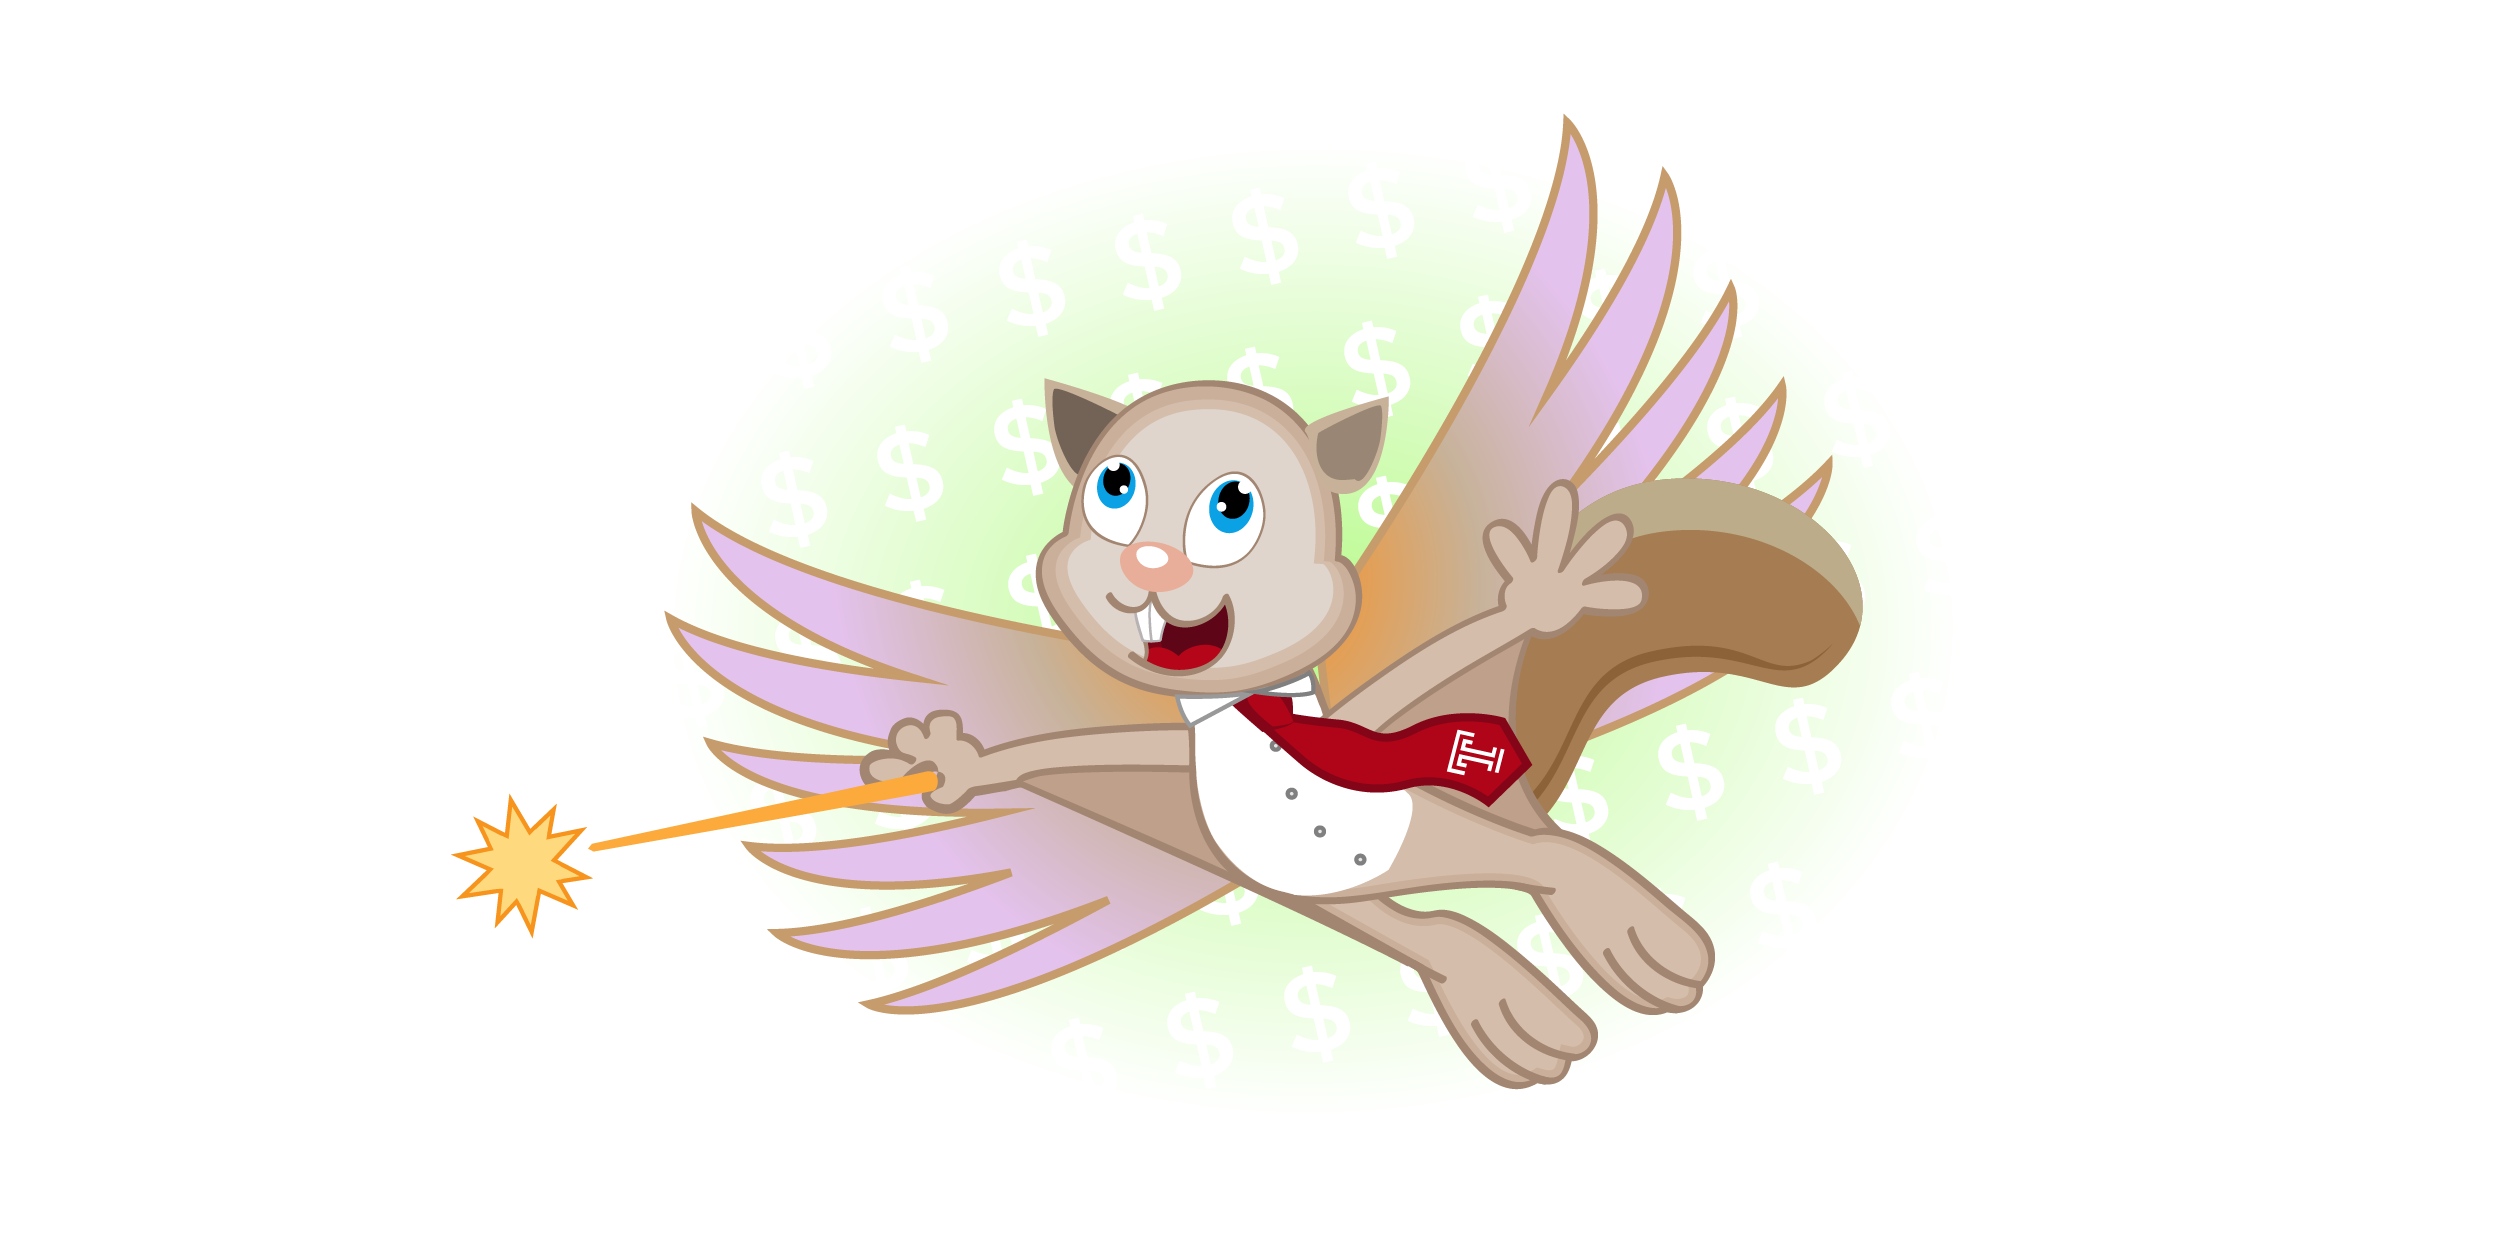 An illustration of a squirrel fairy wearing a tie with money signs in the background.